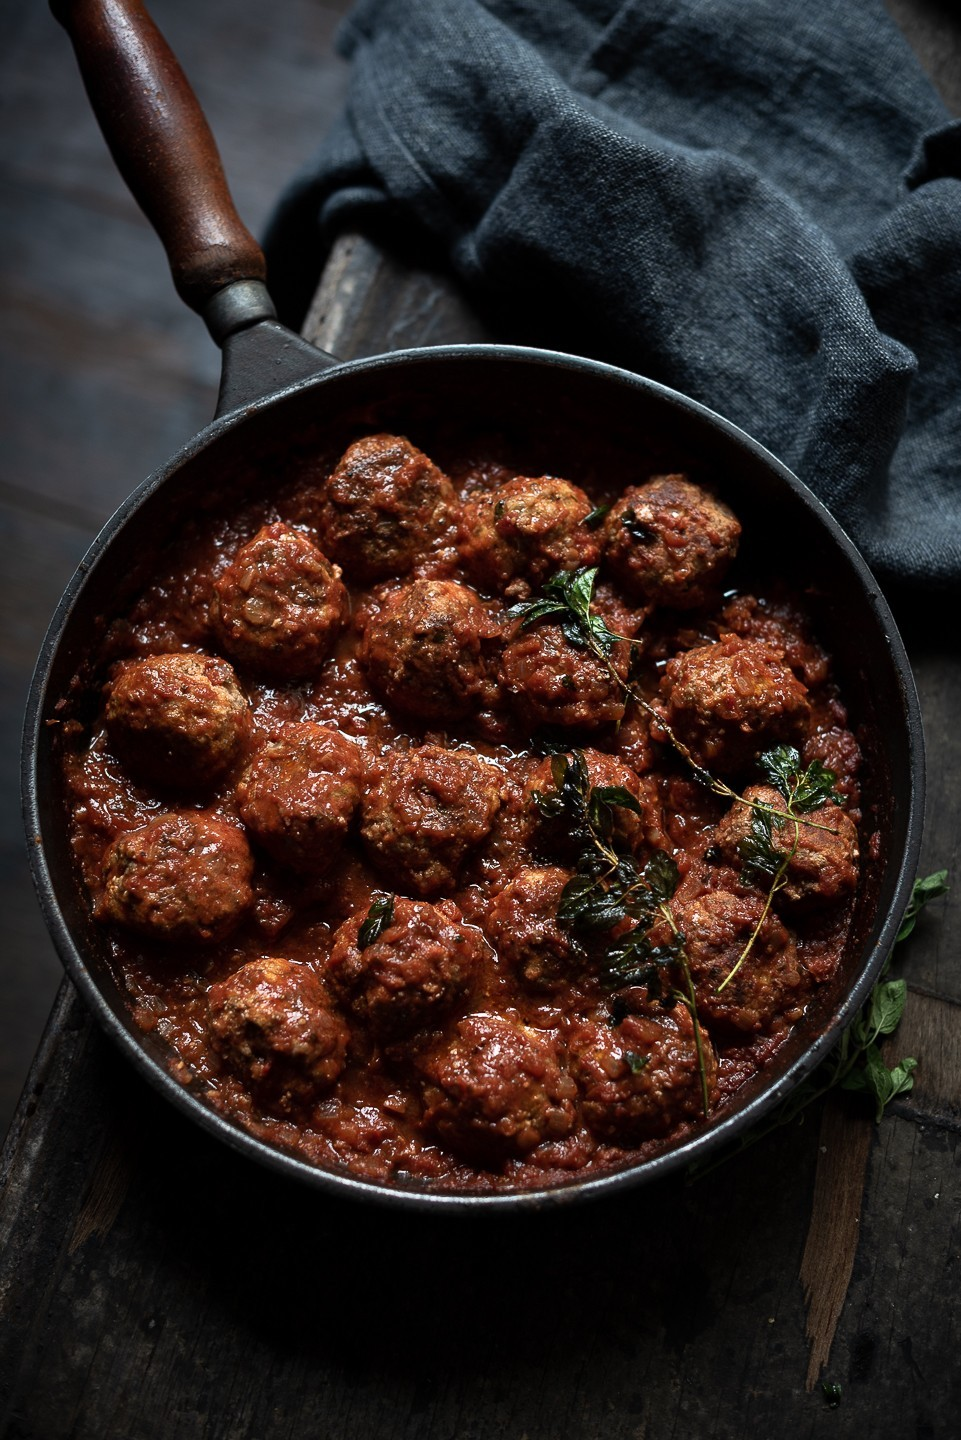 Ottolenghi's ricotta and oregano meatballs | Bibbyskitchen Recipes